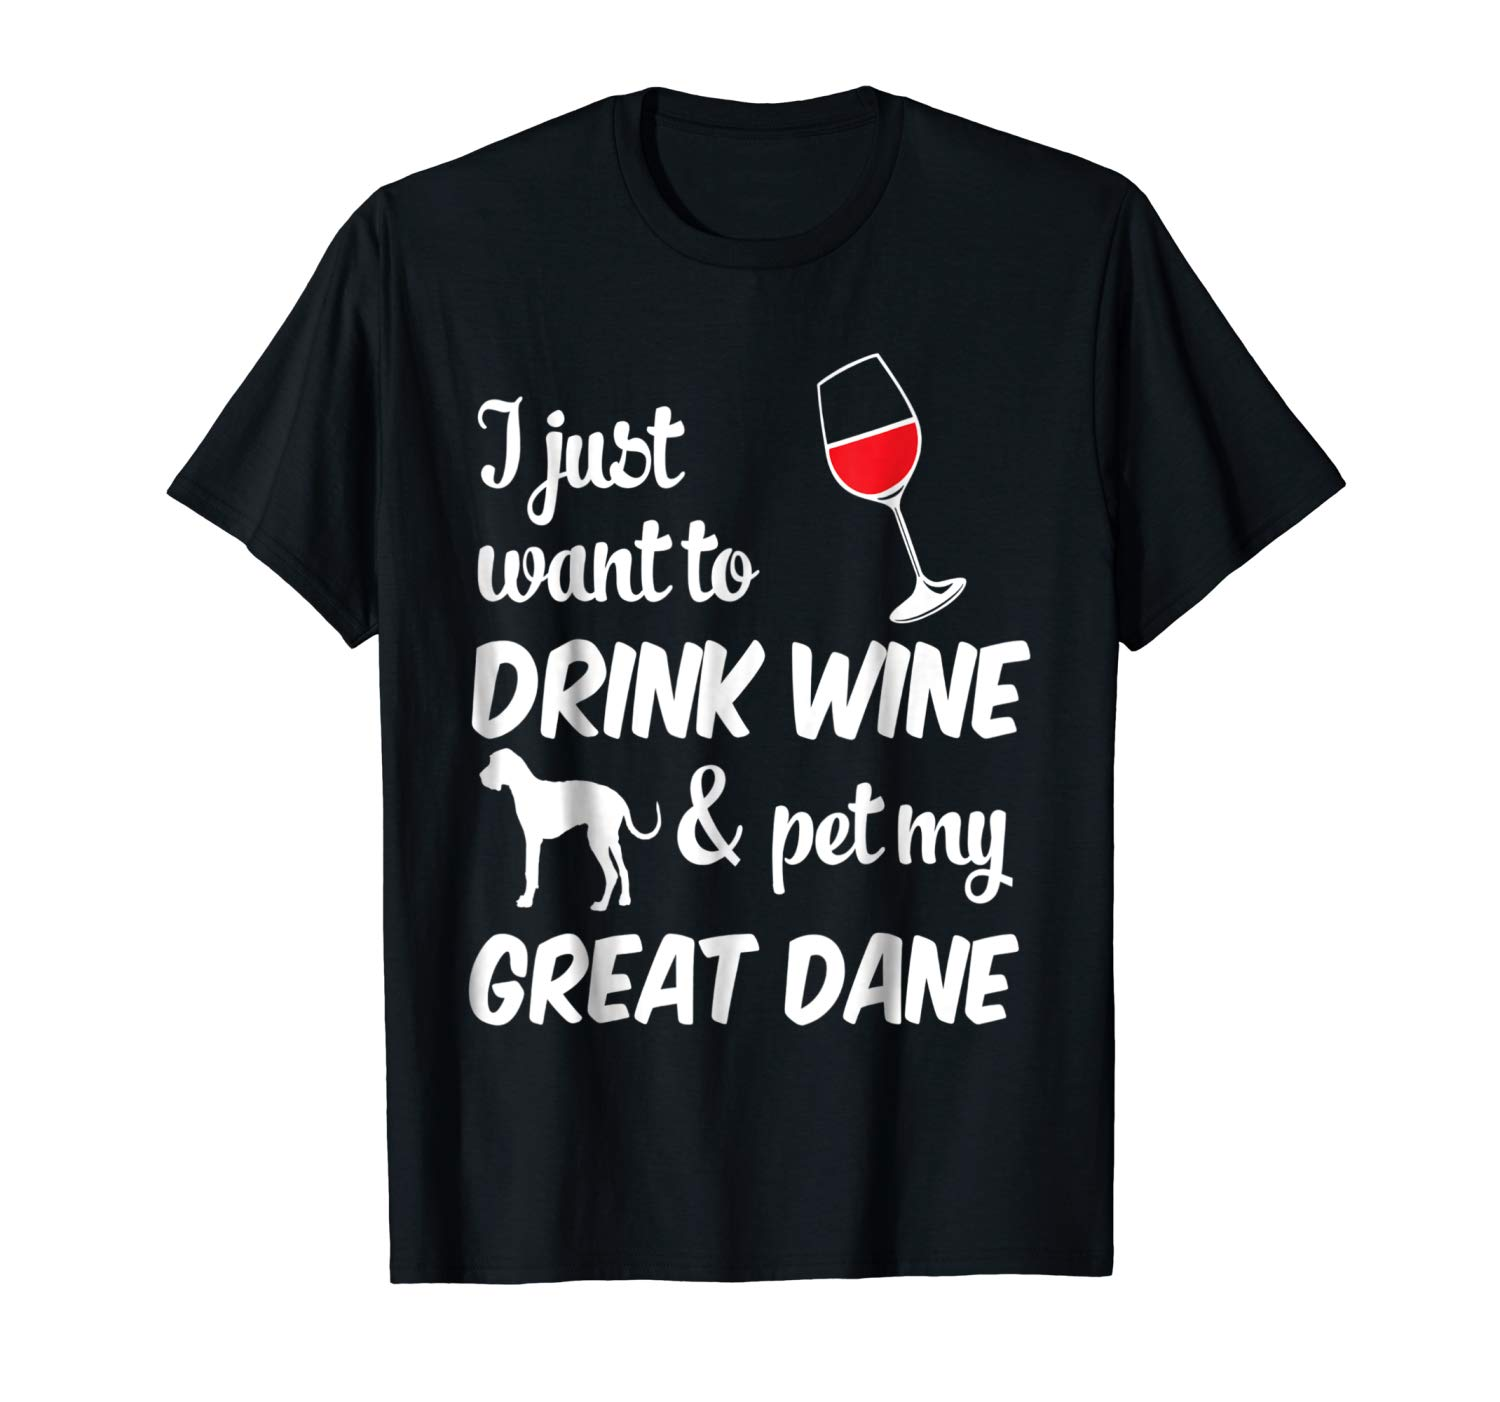 I Just Want To Drink Wine & Pet My Great Dane Tshirt